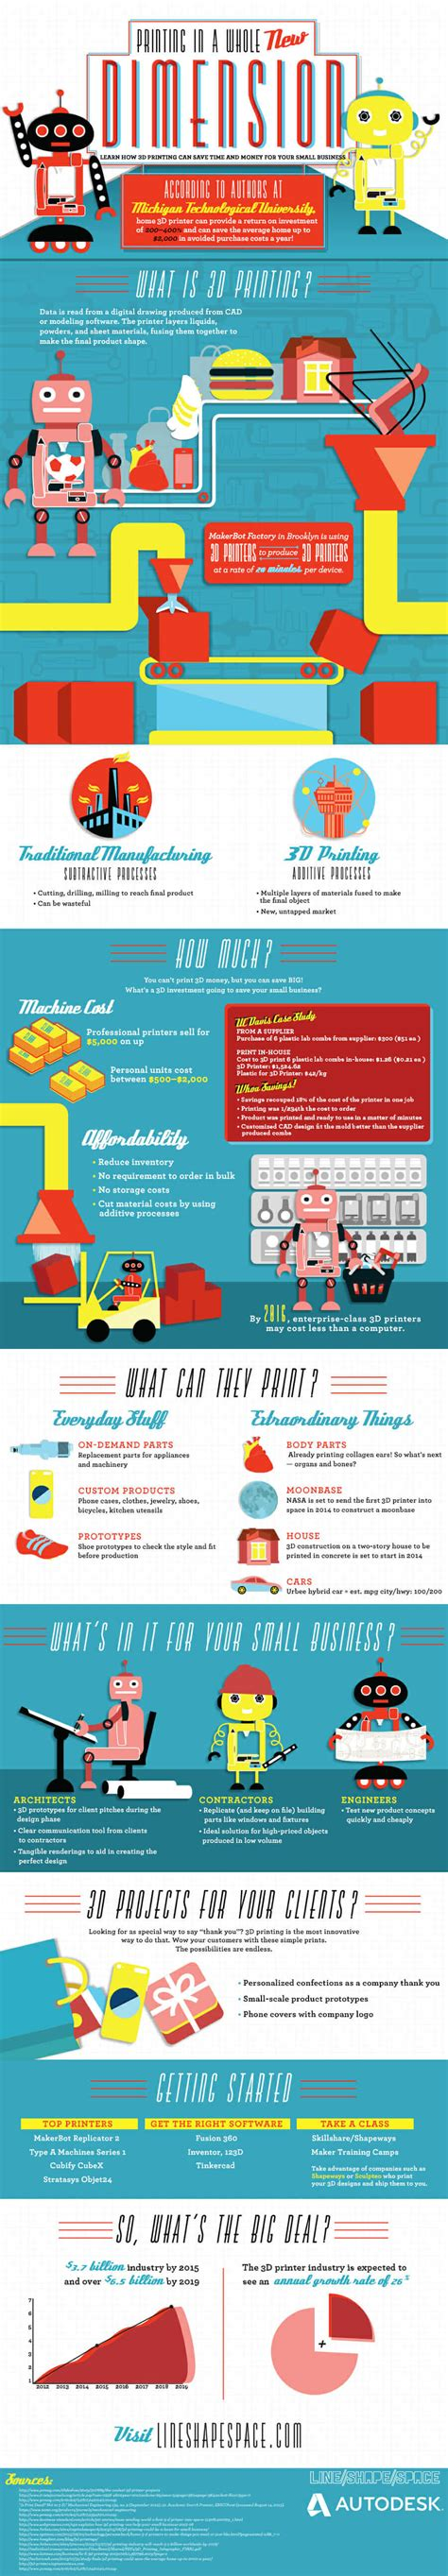 infographics how to print better 3d printing infographic how you save time and money